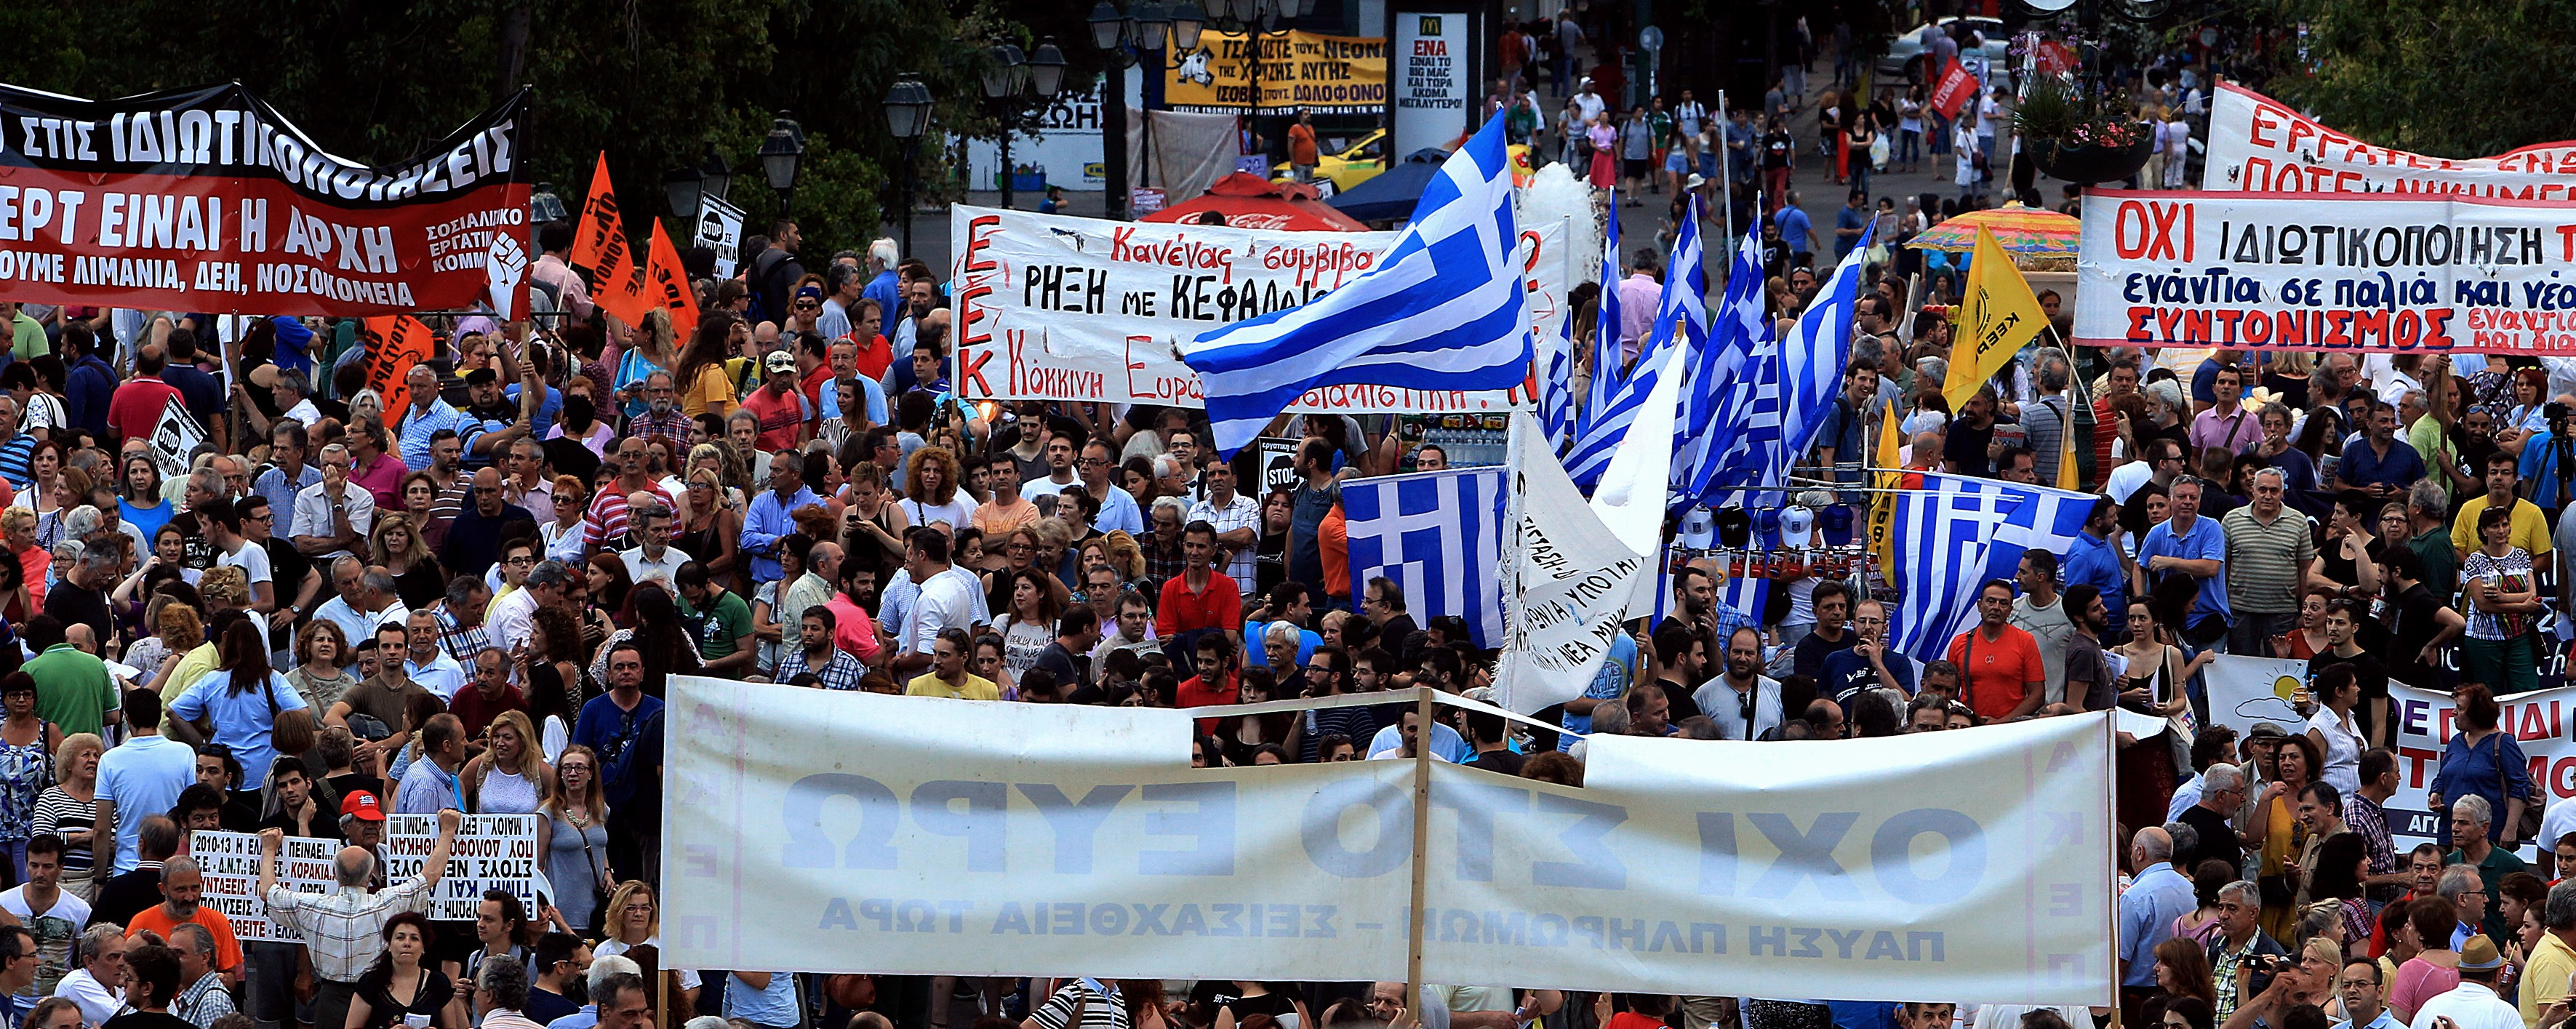 Greeks Withdraw Billions From Banks as Euro Crisis Talks Reach 'Breaking Point'